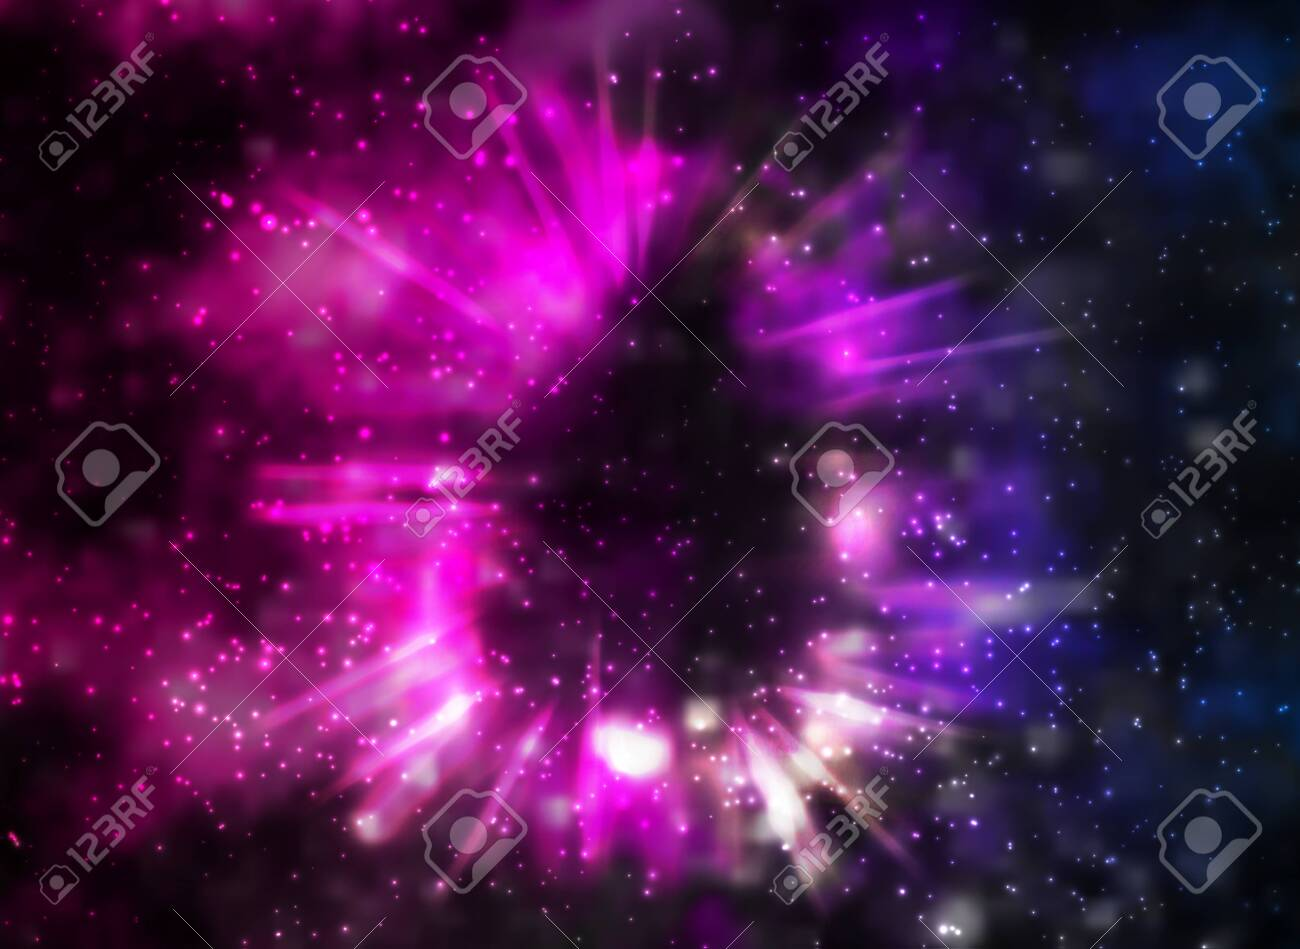 Portal Sky Abstract Space Background Magic Light Royalty Free Cliparts Vectors And Stock Illustration Image 150788936